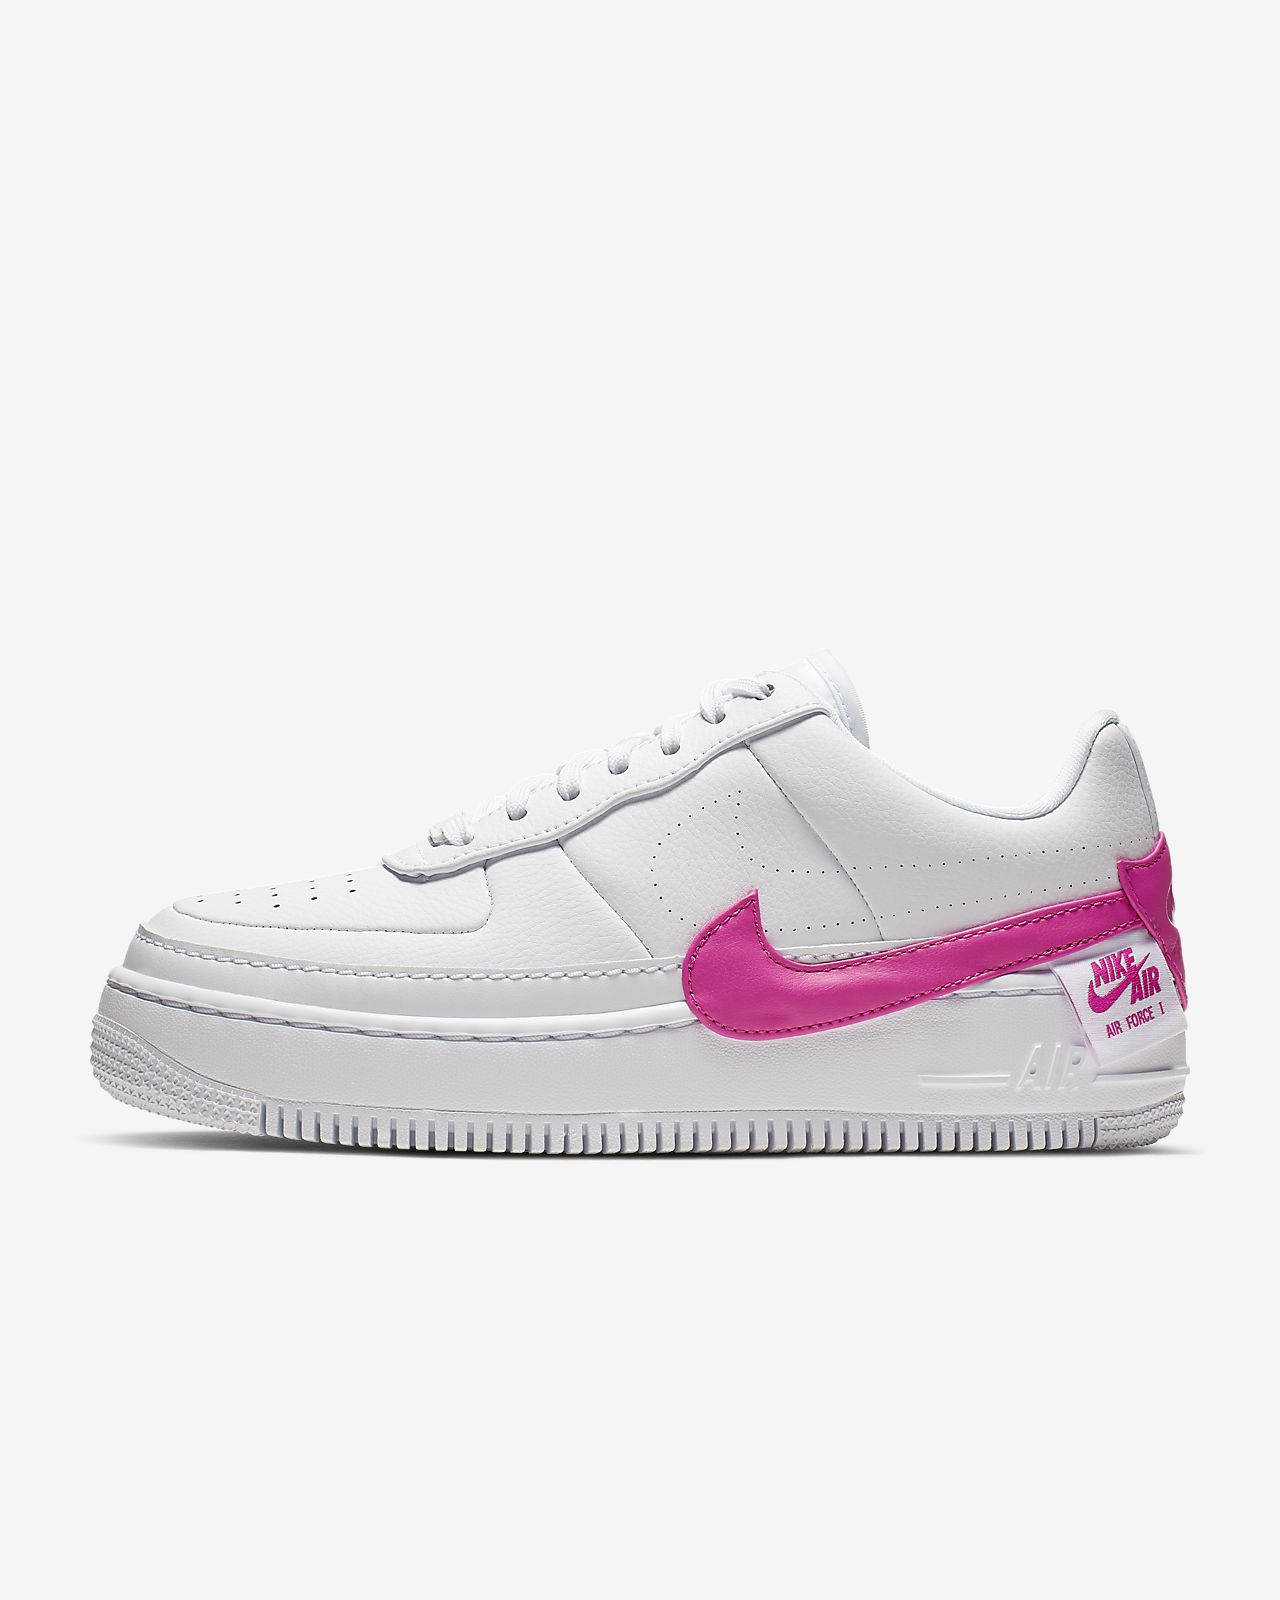 3ae205f616add Nike Air Force 1 Jester XX Shoe. Nike.com